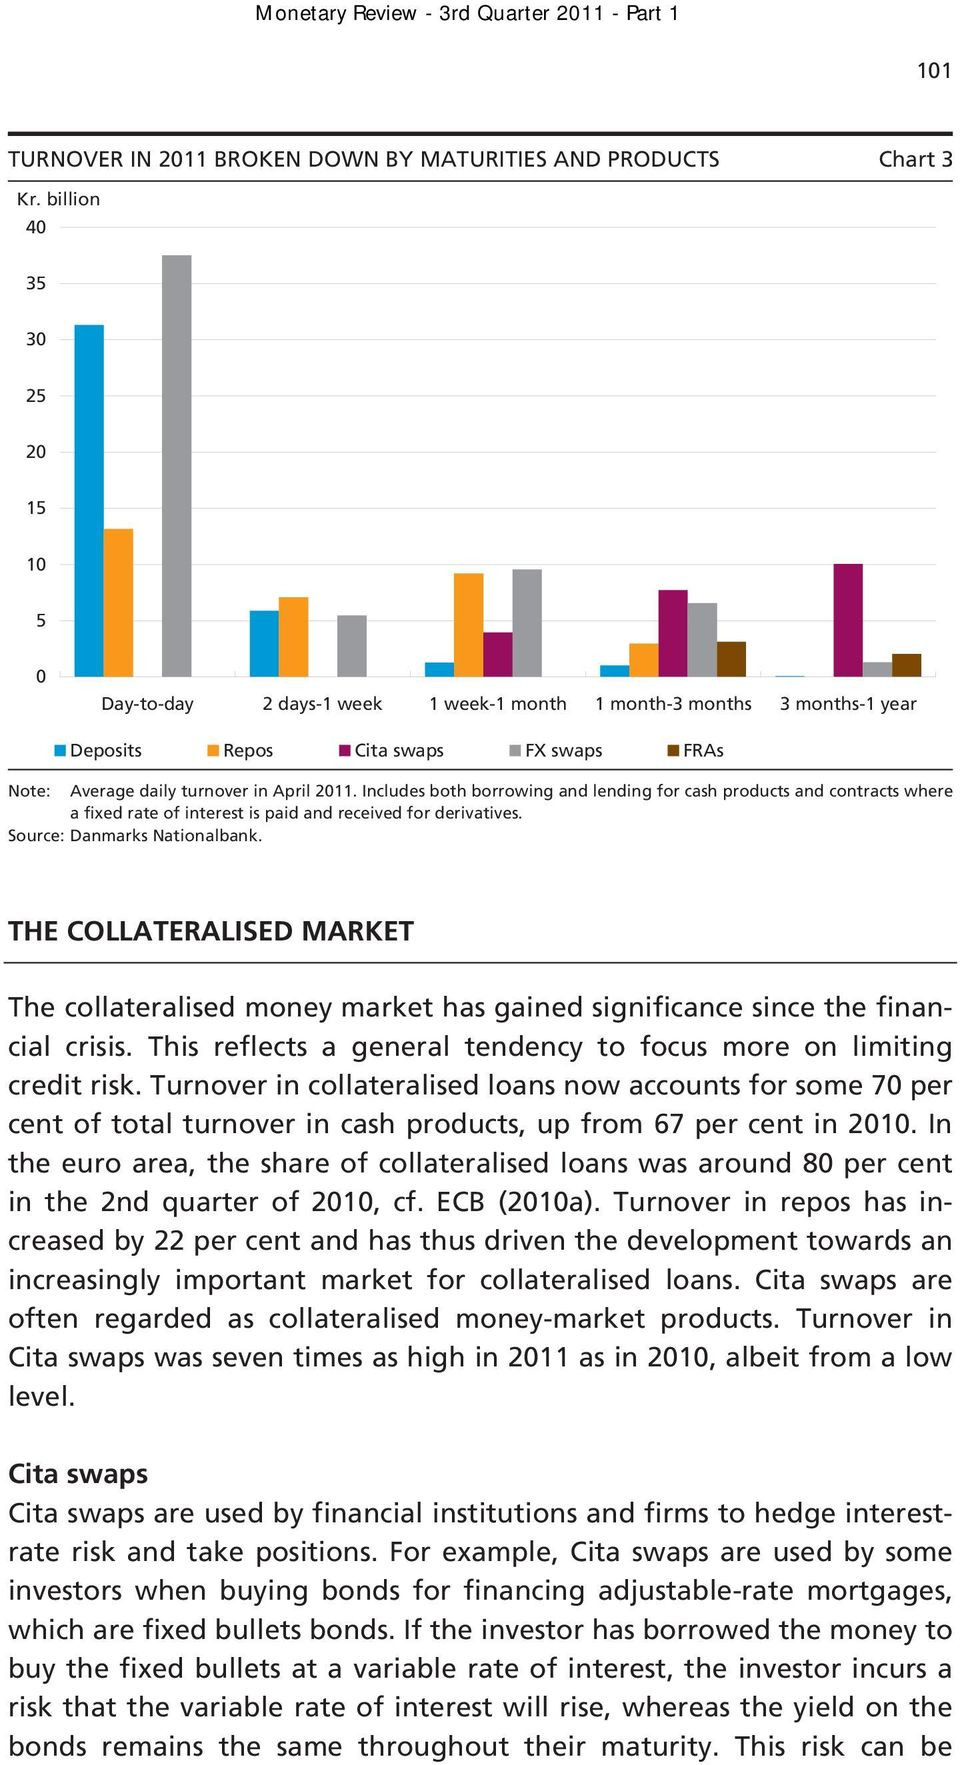 THE COLLATERALISED MARKET The collateralised money market has gained significance since the financial crisis. This reflects a general tendency to focus more on limiting credit risk.